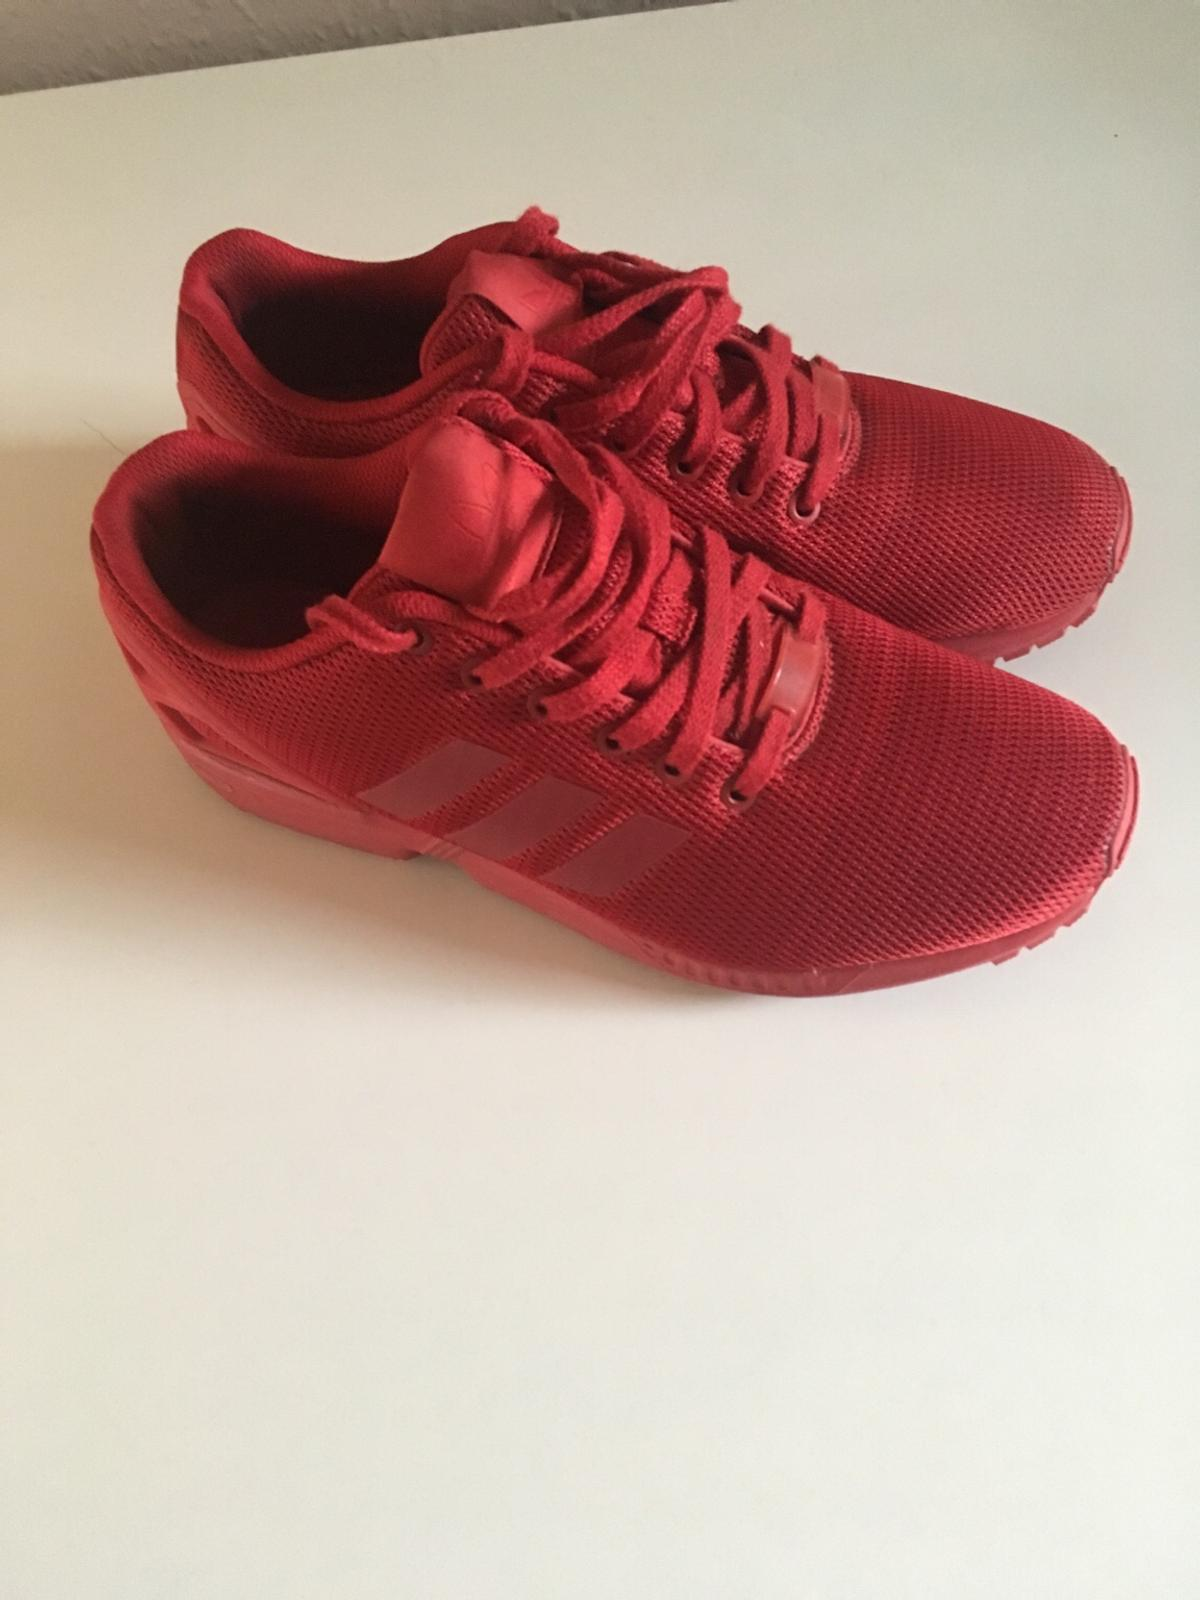 b2bc46463 Adidas Men's trainers Size 9 in S40 Chesterfield for £20.00 for sale ...